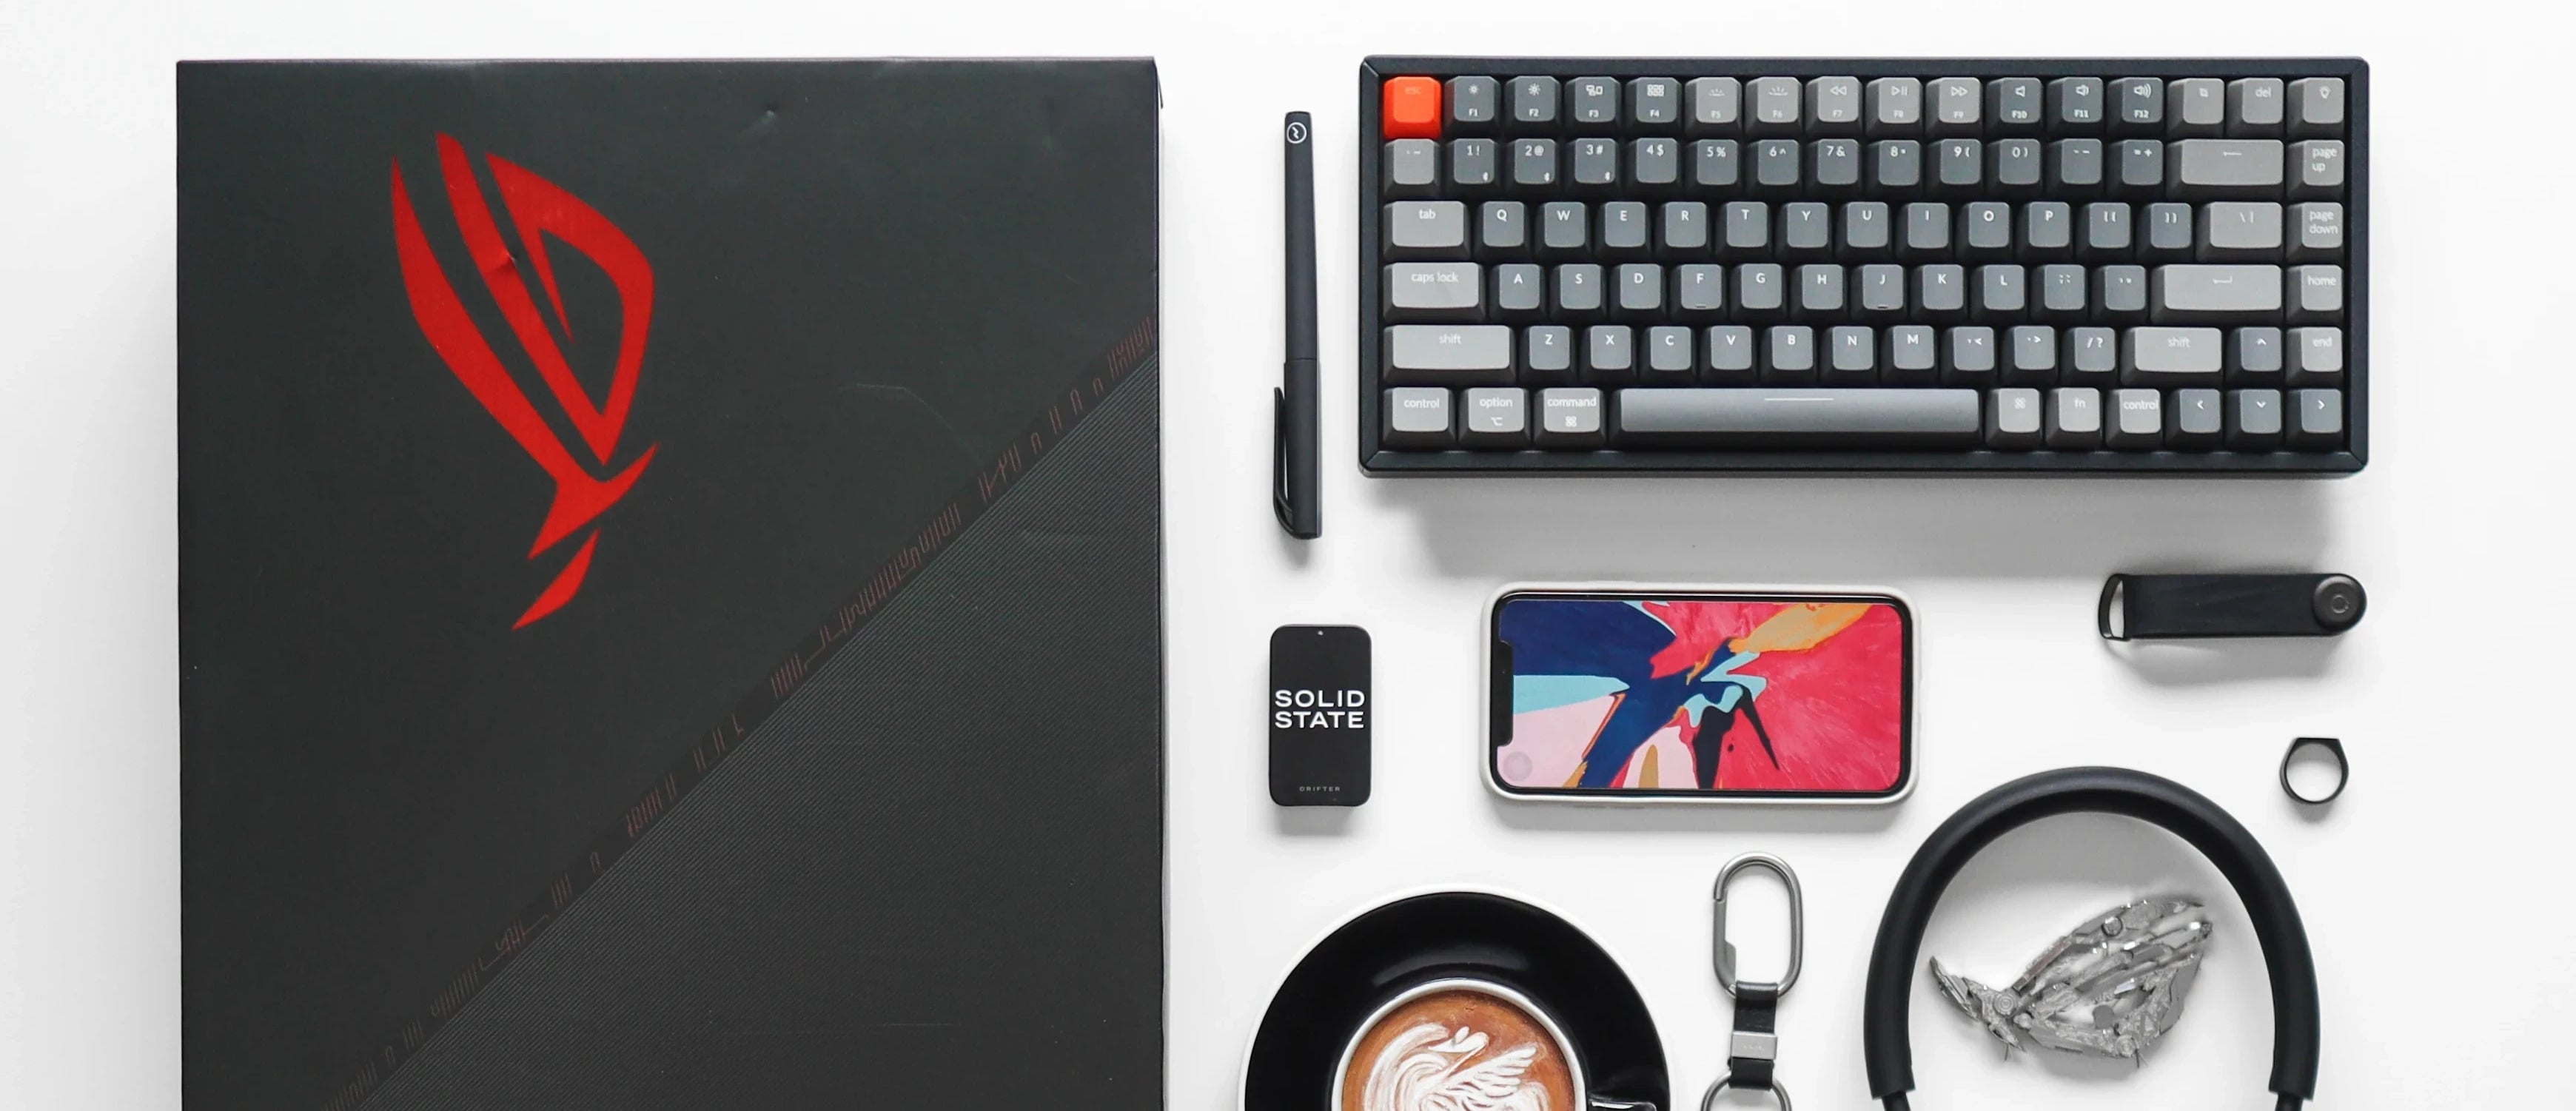 Keychron K2, the best affordable wireless mechanical keyboard with mixed color keycaps agiputraaspian iphone headphone coffee